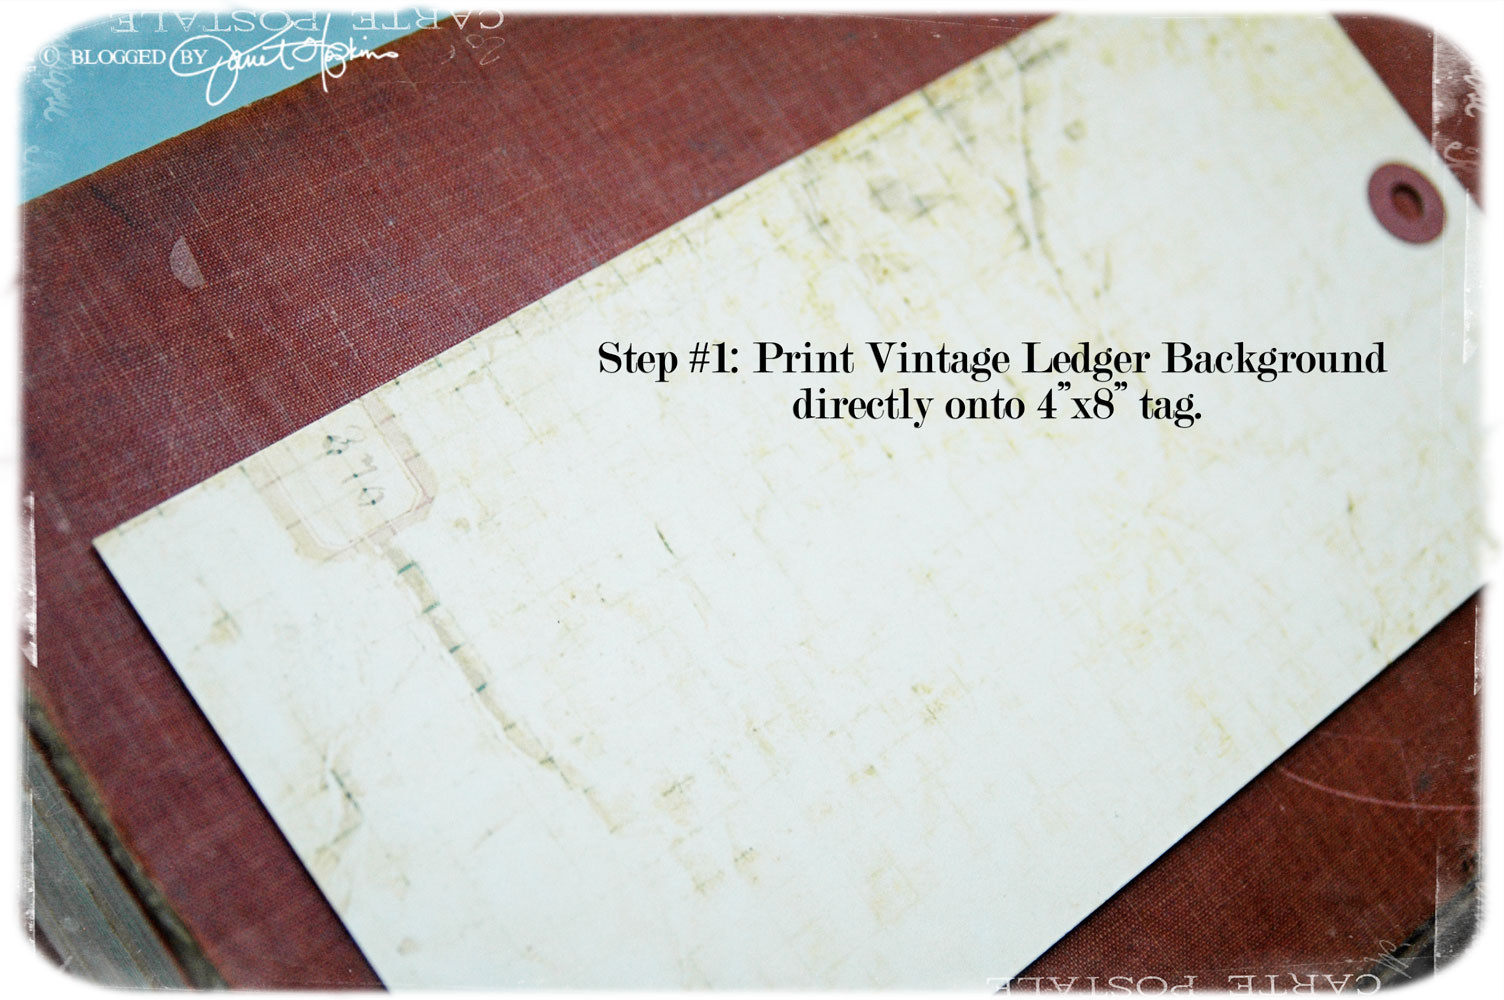 it's all in the details: The Tim Holtz Grid Blocks and a Tag